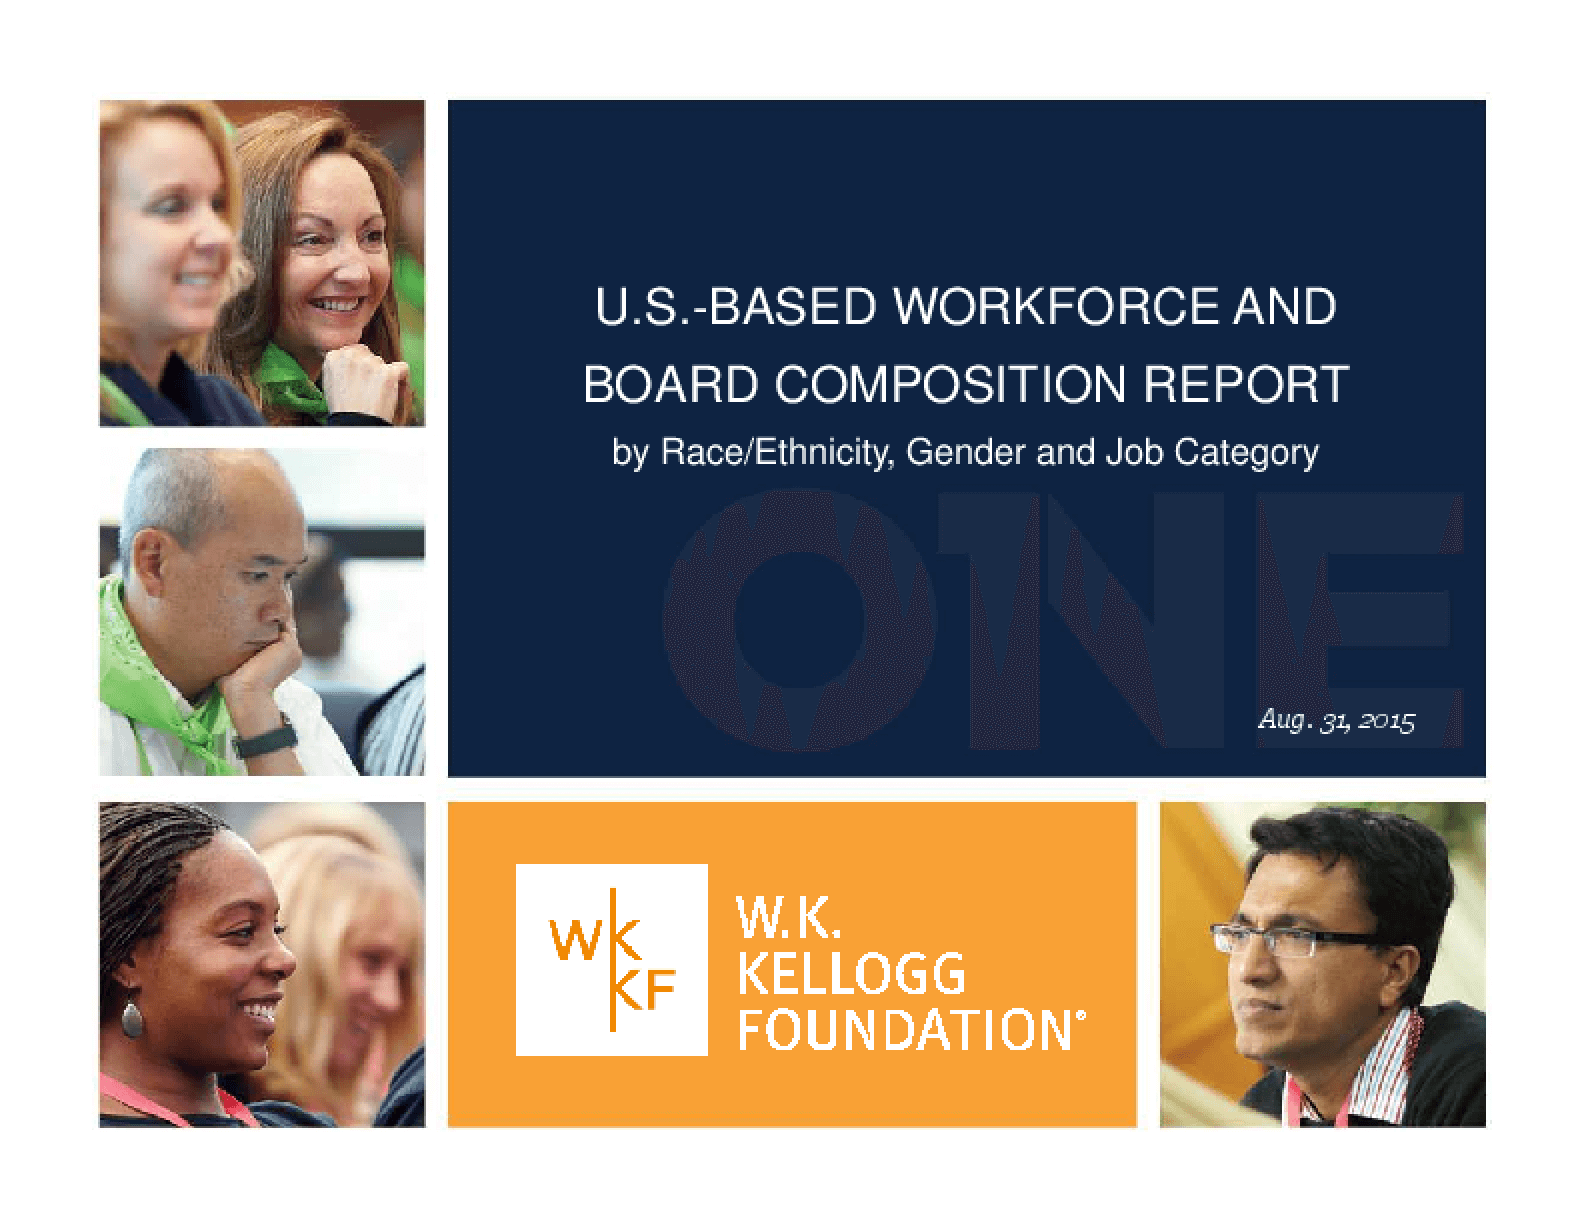 US Based Workforce and Board Composition Report by Race/Ethinicity, Gender and Job Category 2015